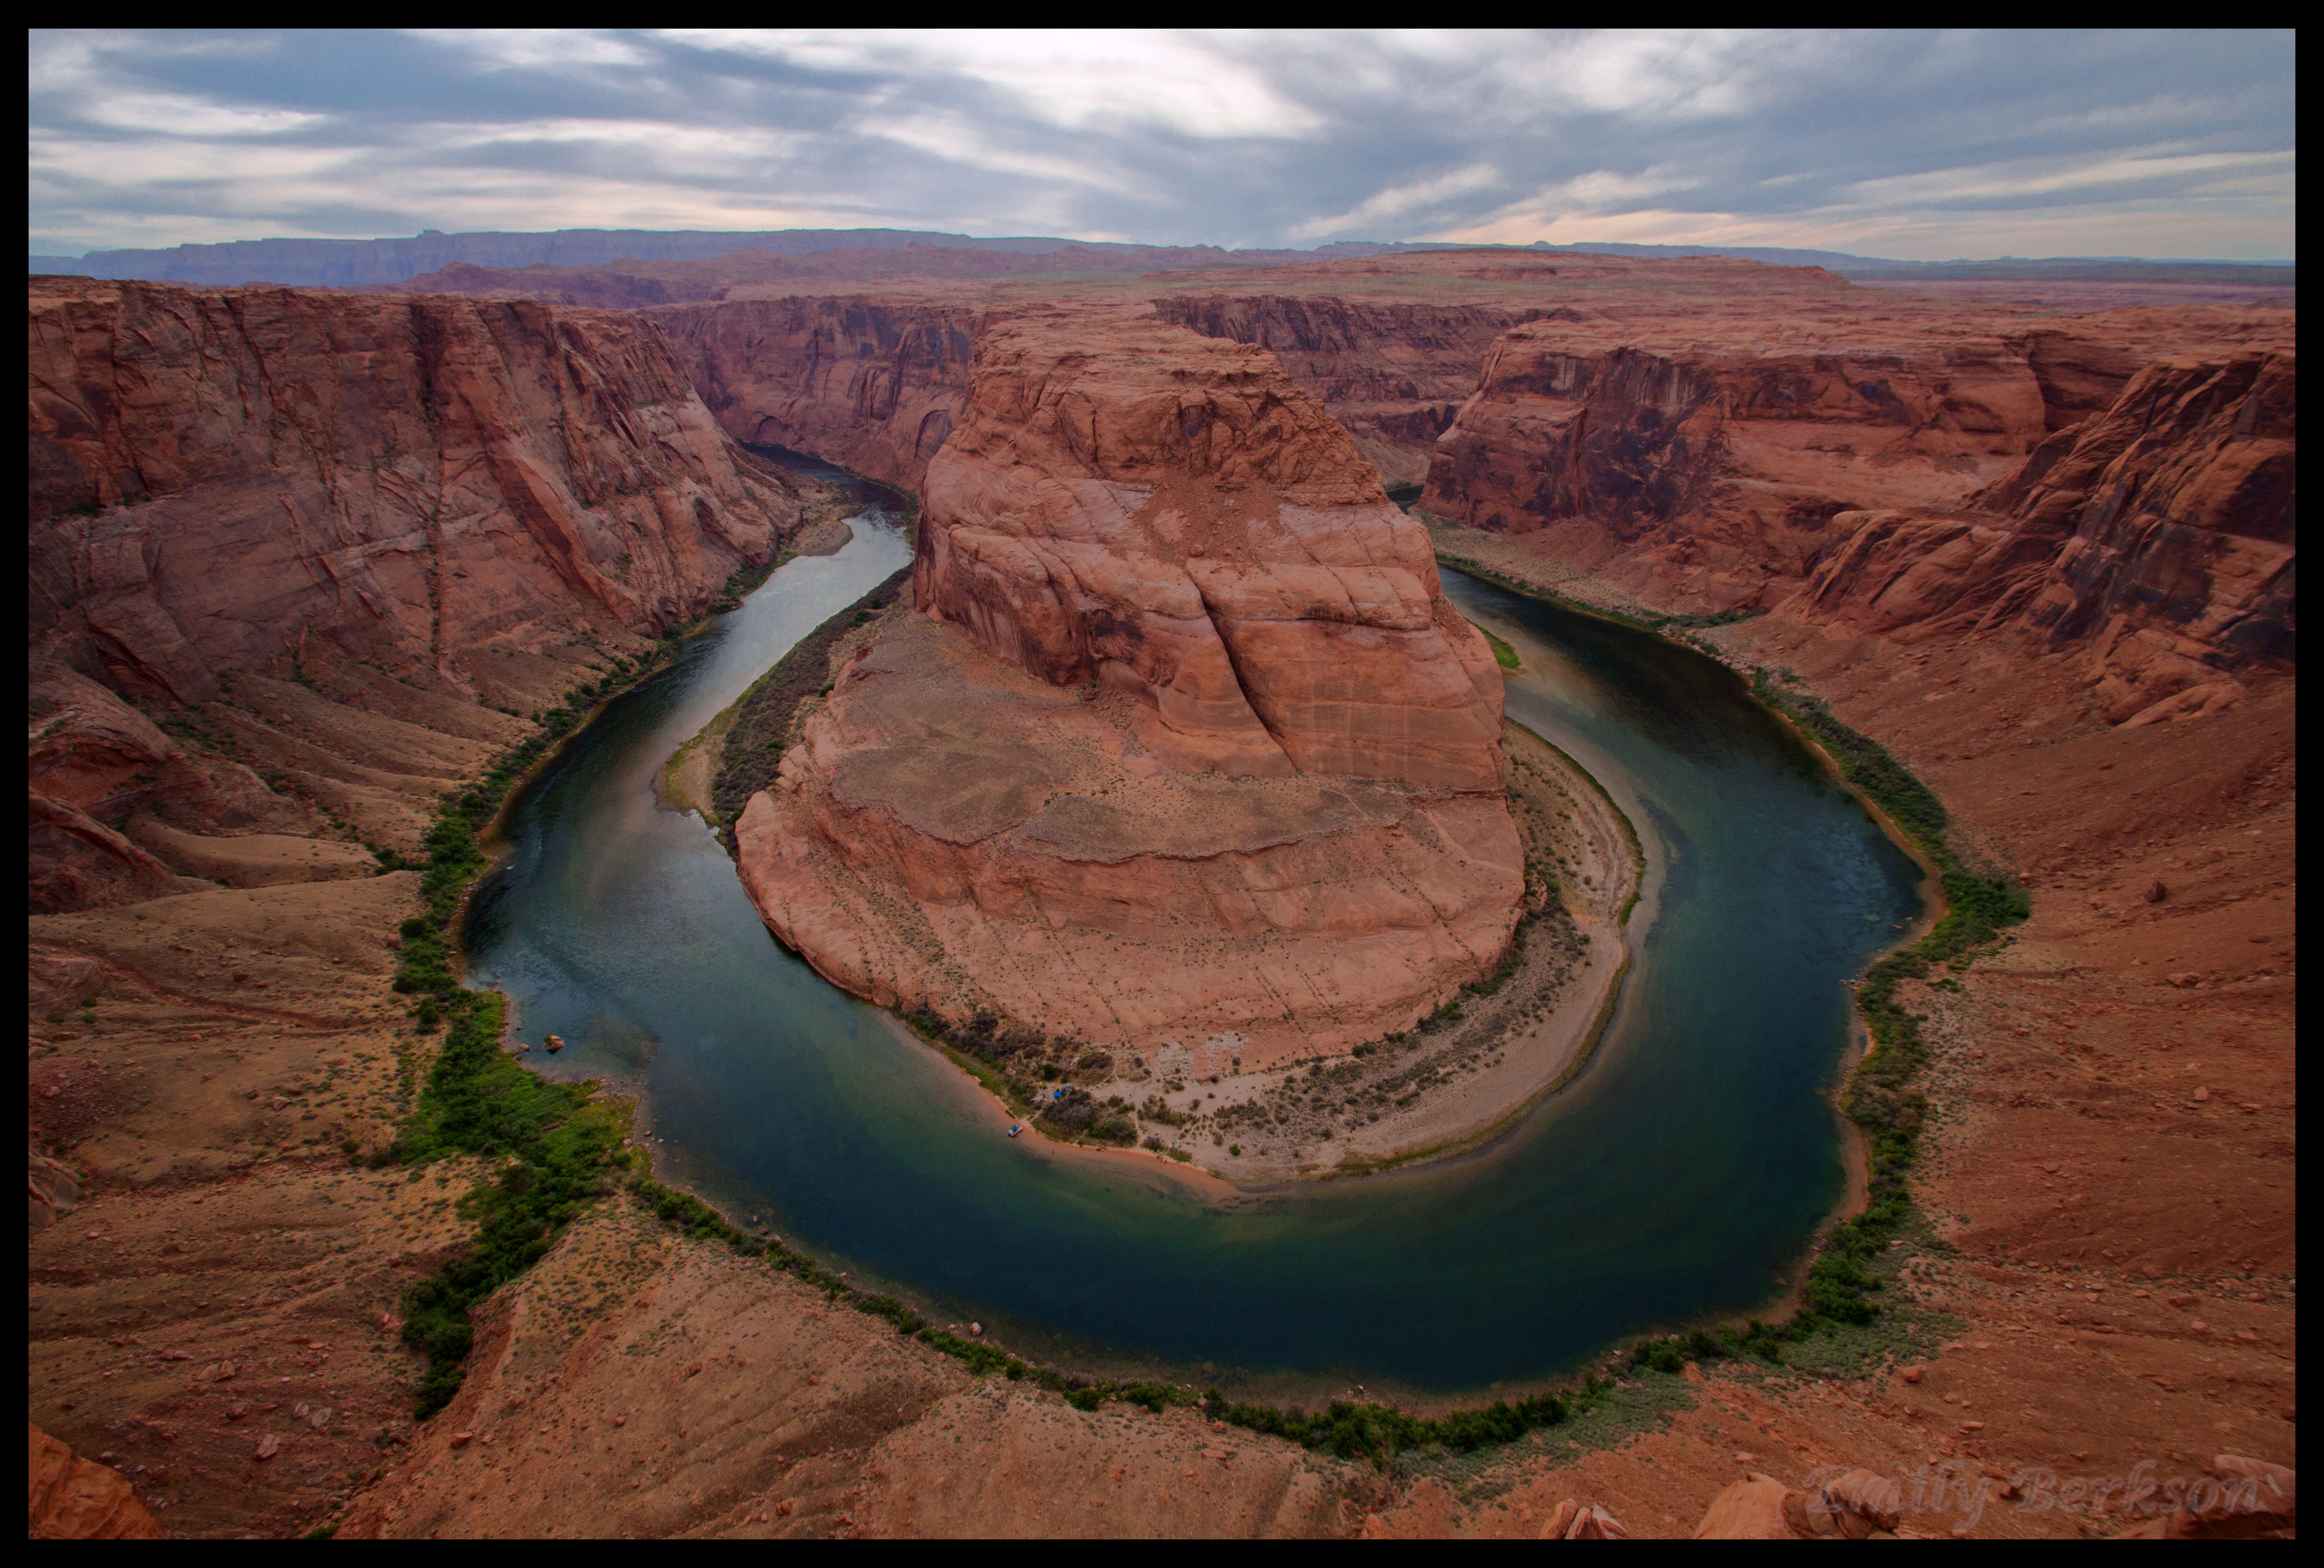 Xi horseshoe bend and antelope canyon emilyberkson for What can you make out of horseshoes